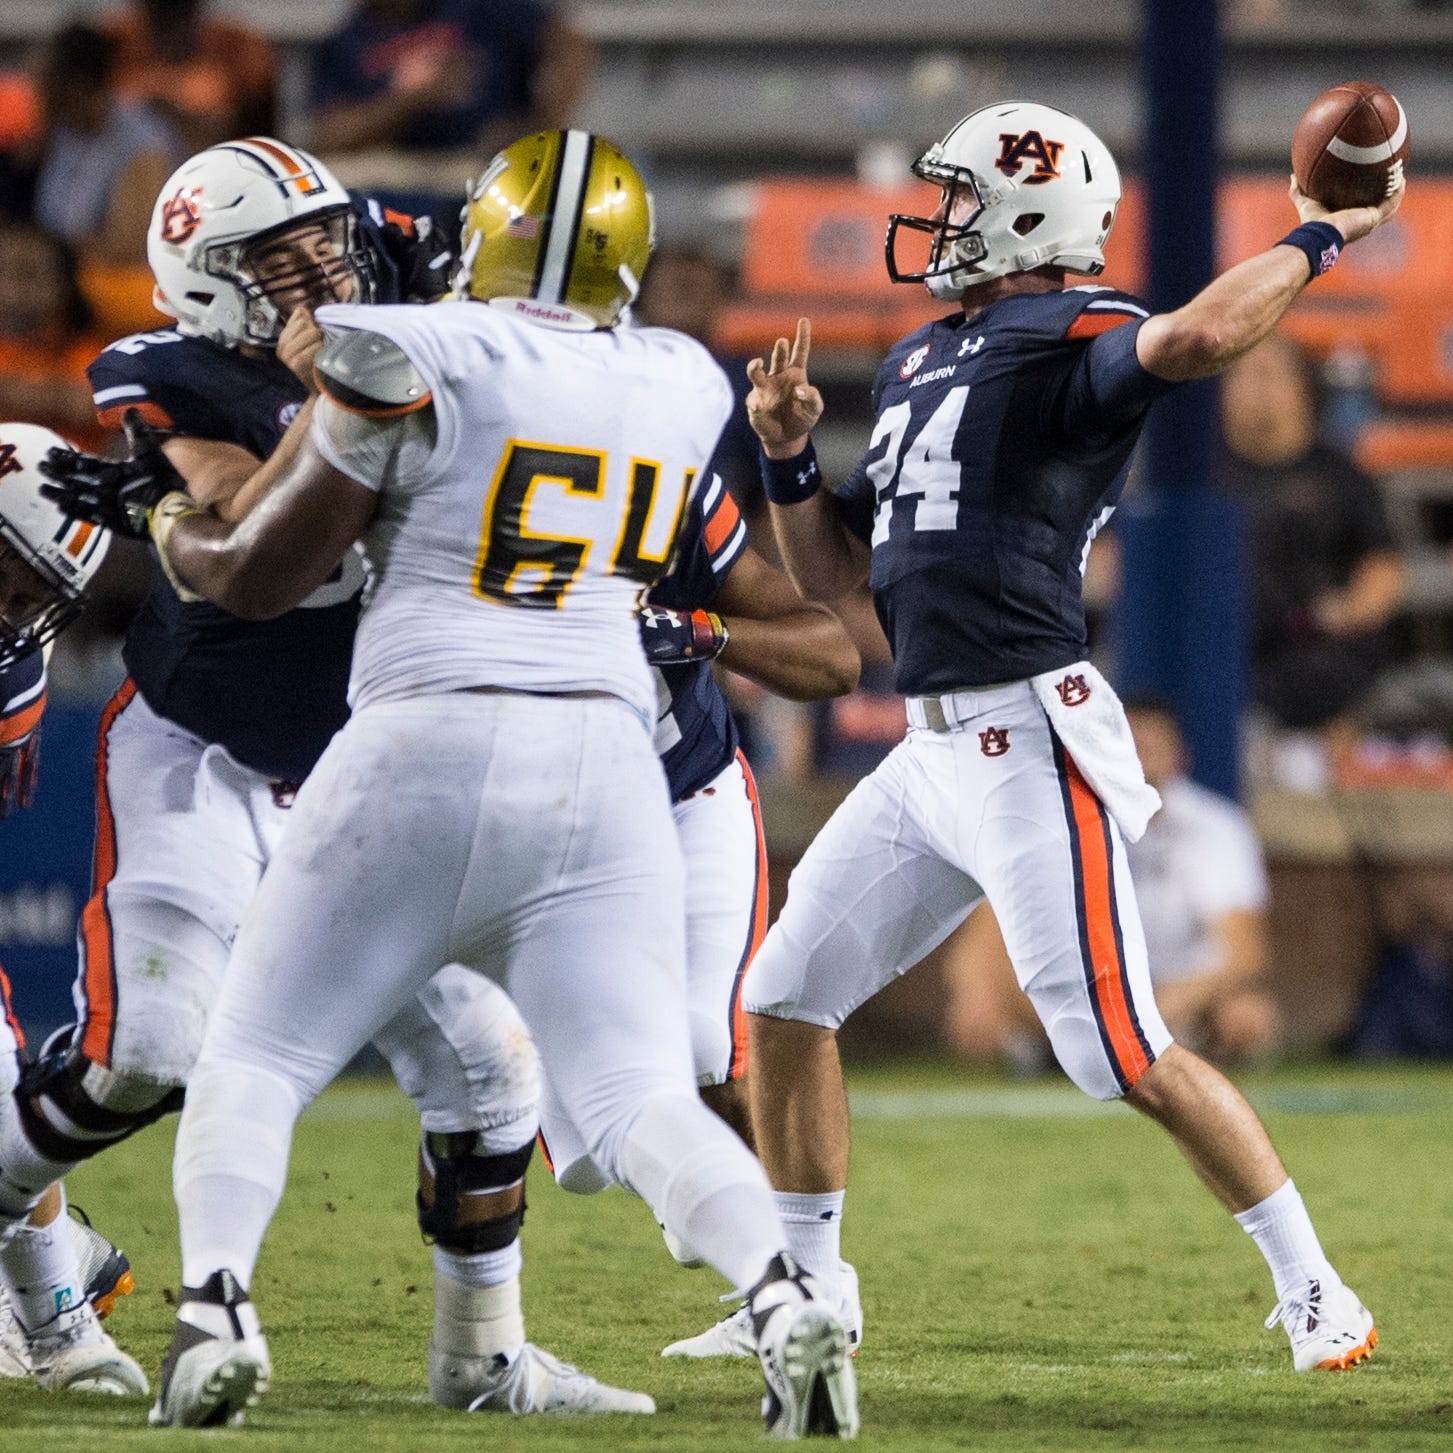 Auburn QB competition: All Cord Sandberg wants is an opportunity